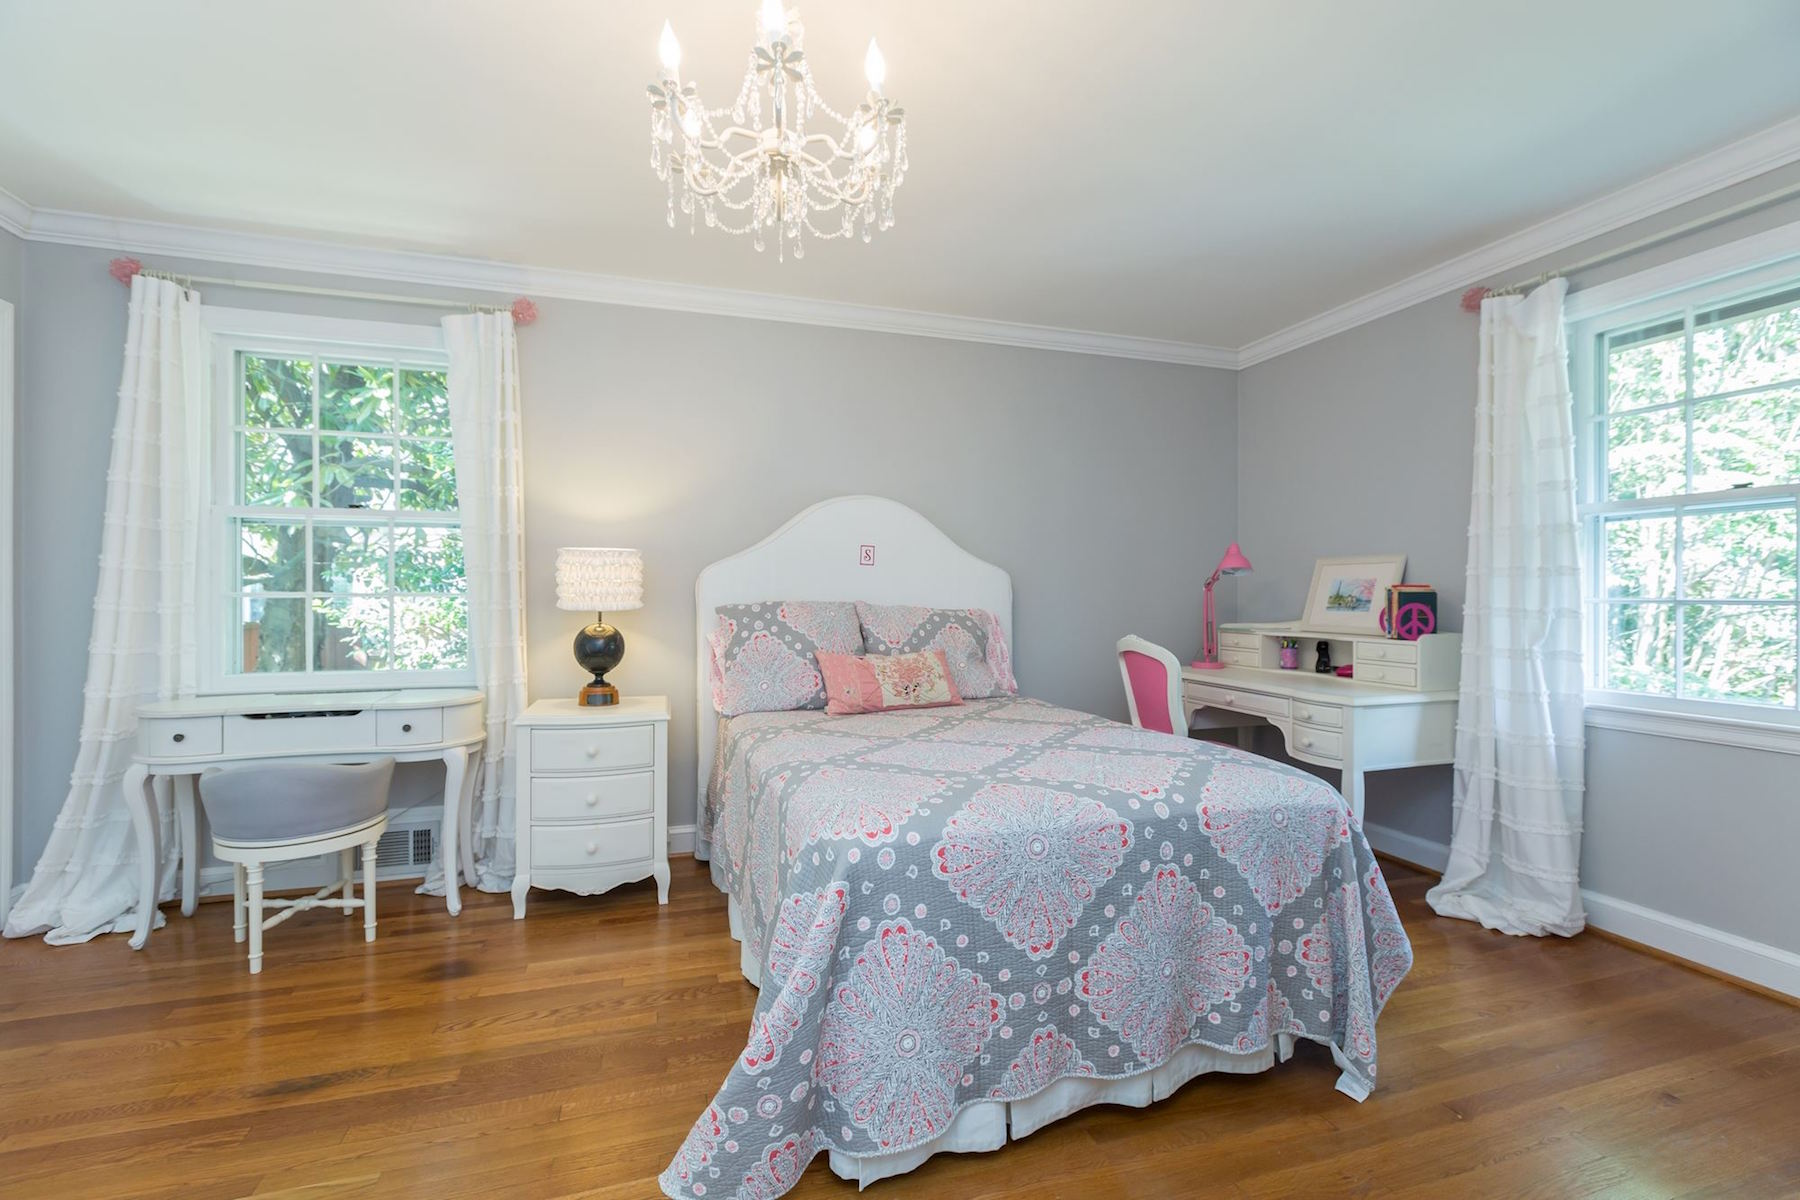 Additional photo for property listing at 5153 Tilden Street 5153 Tilden Street Nw Washington, Distretto Di Columbia 20016 Stati Uniti